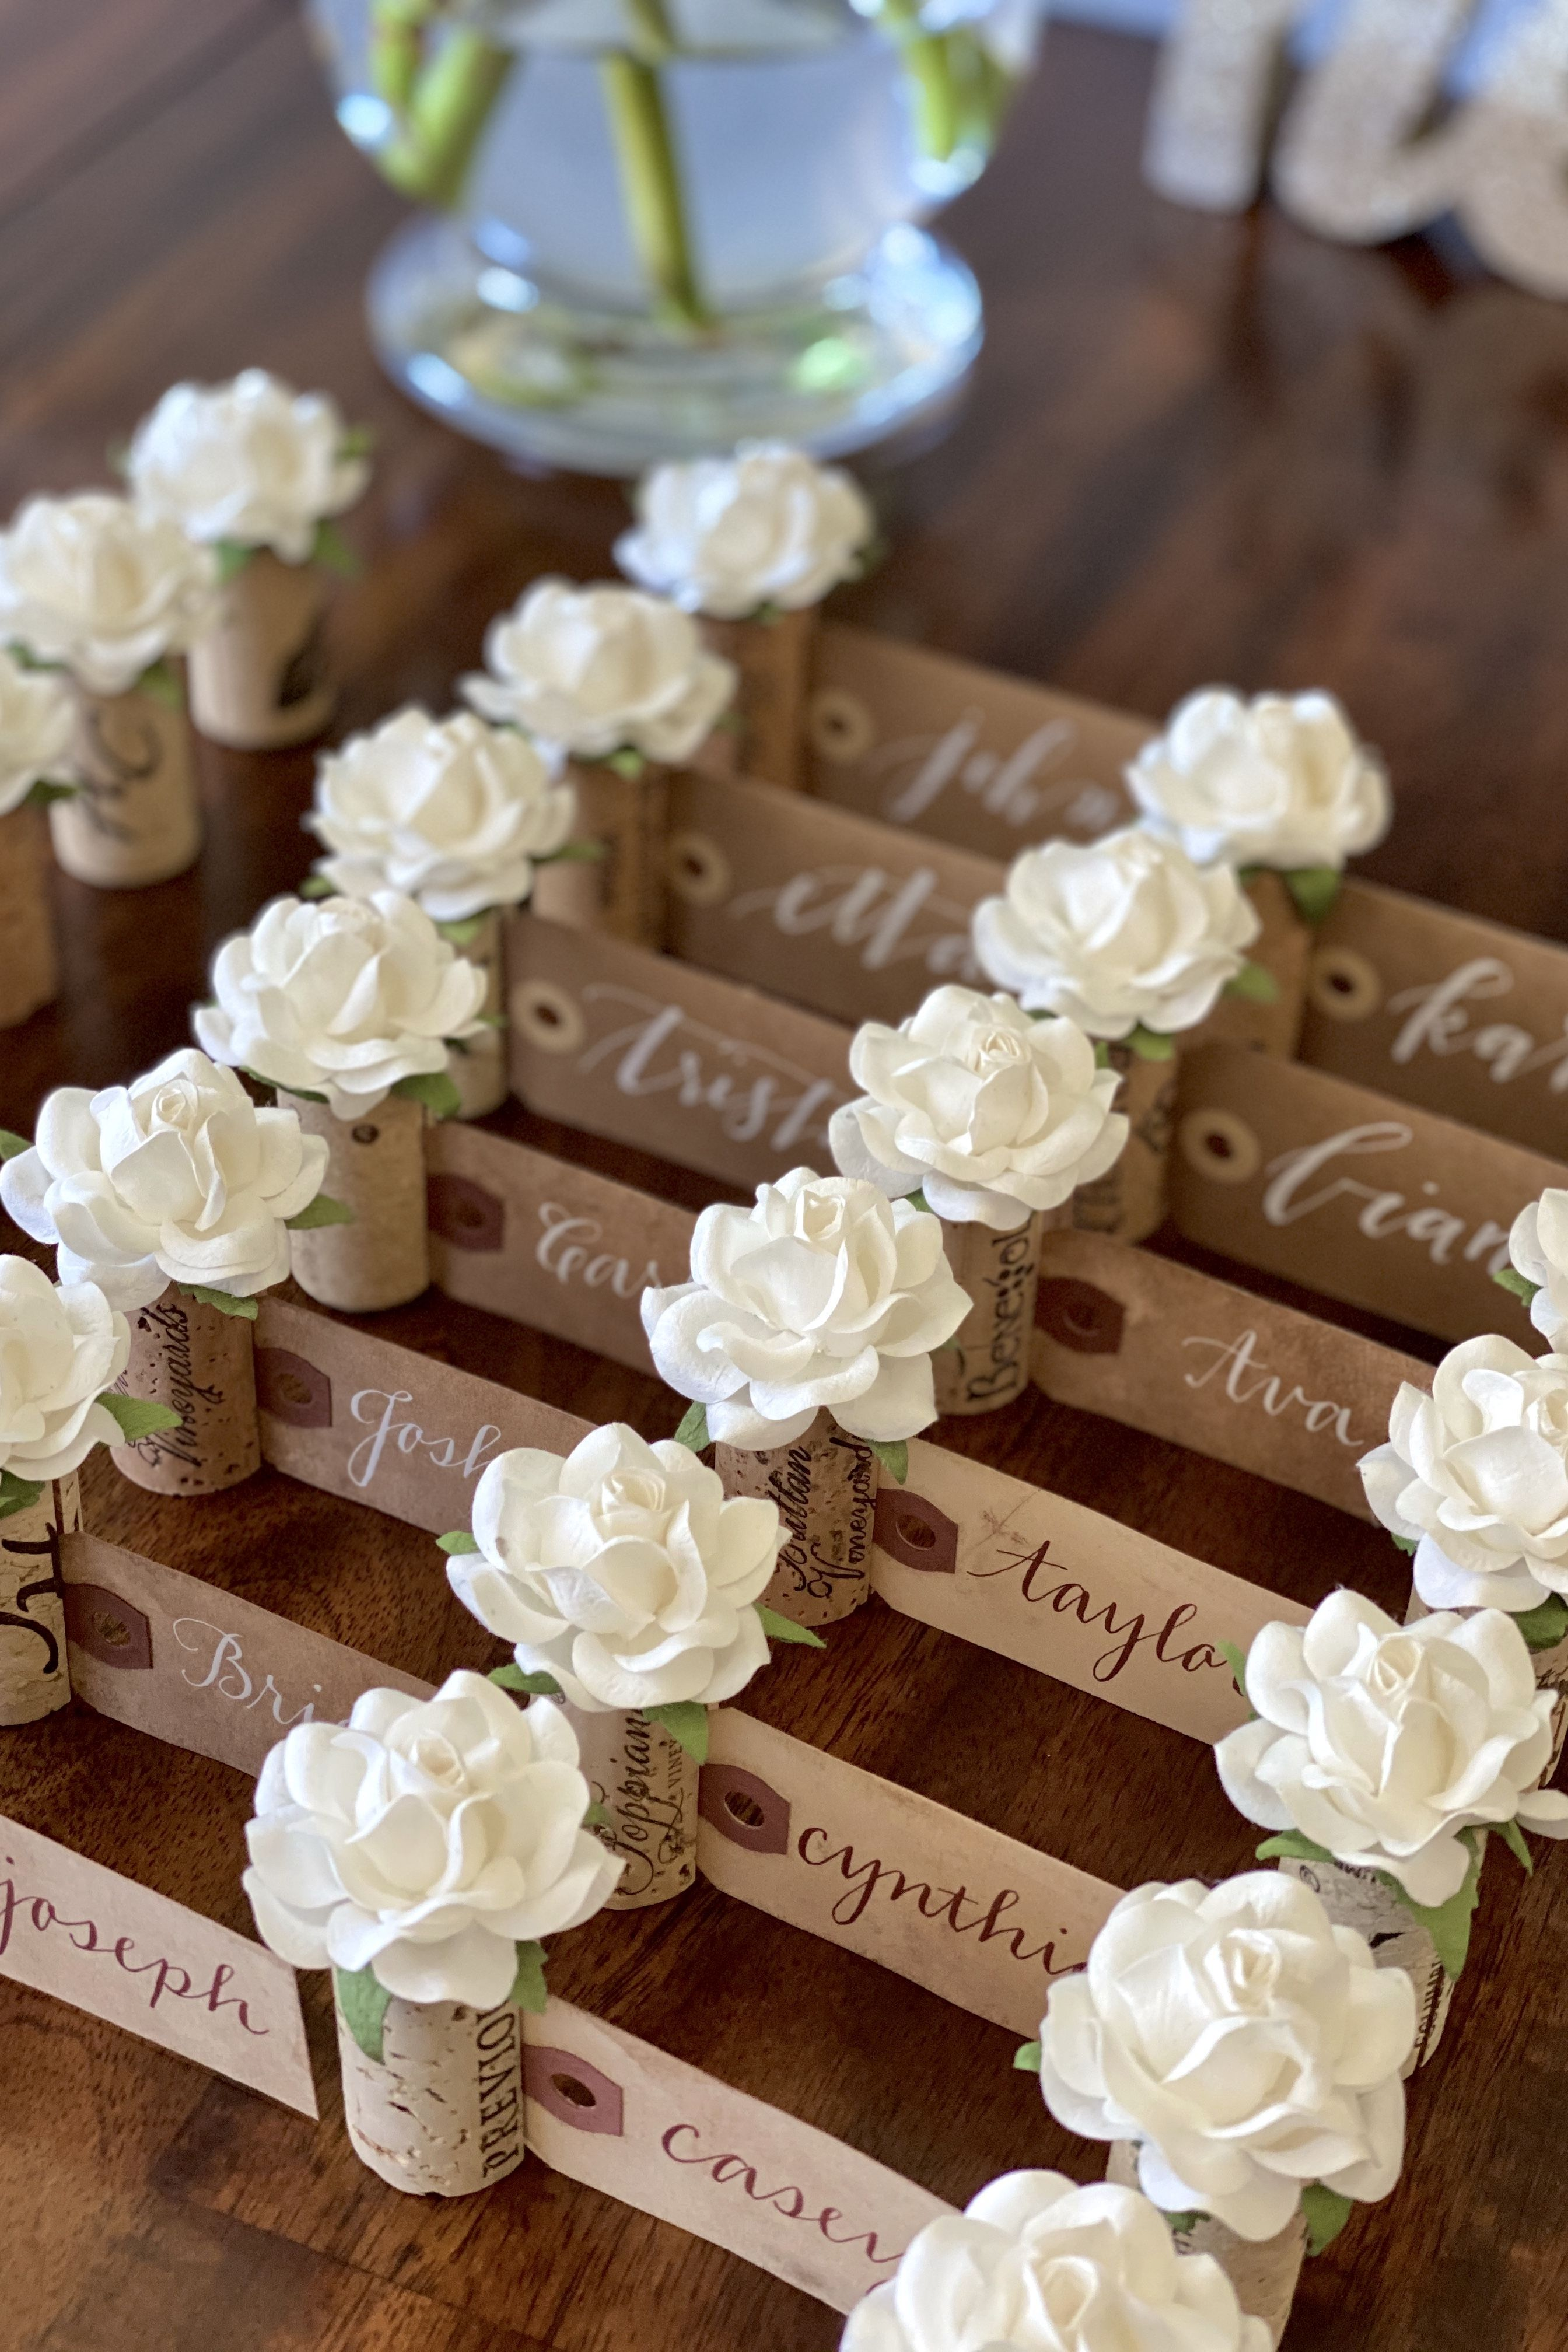 Wedding Place Card Holder  Place card holders wedding, Place card